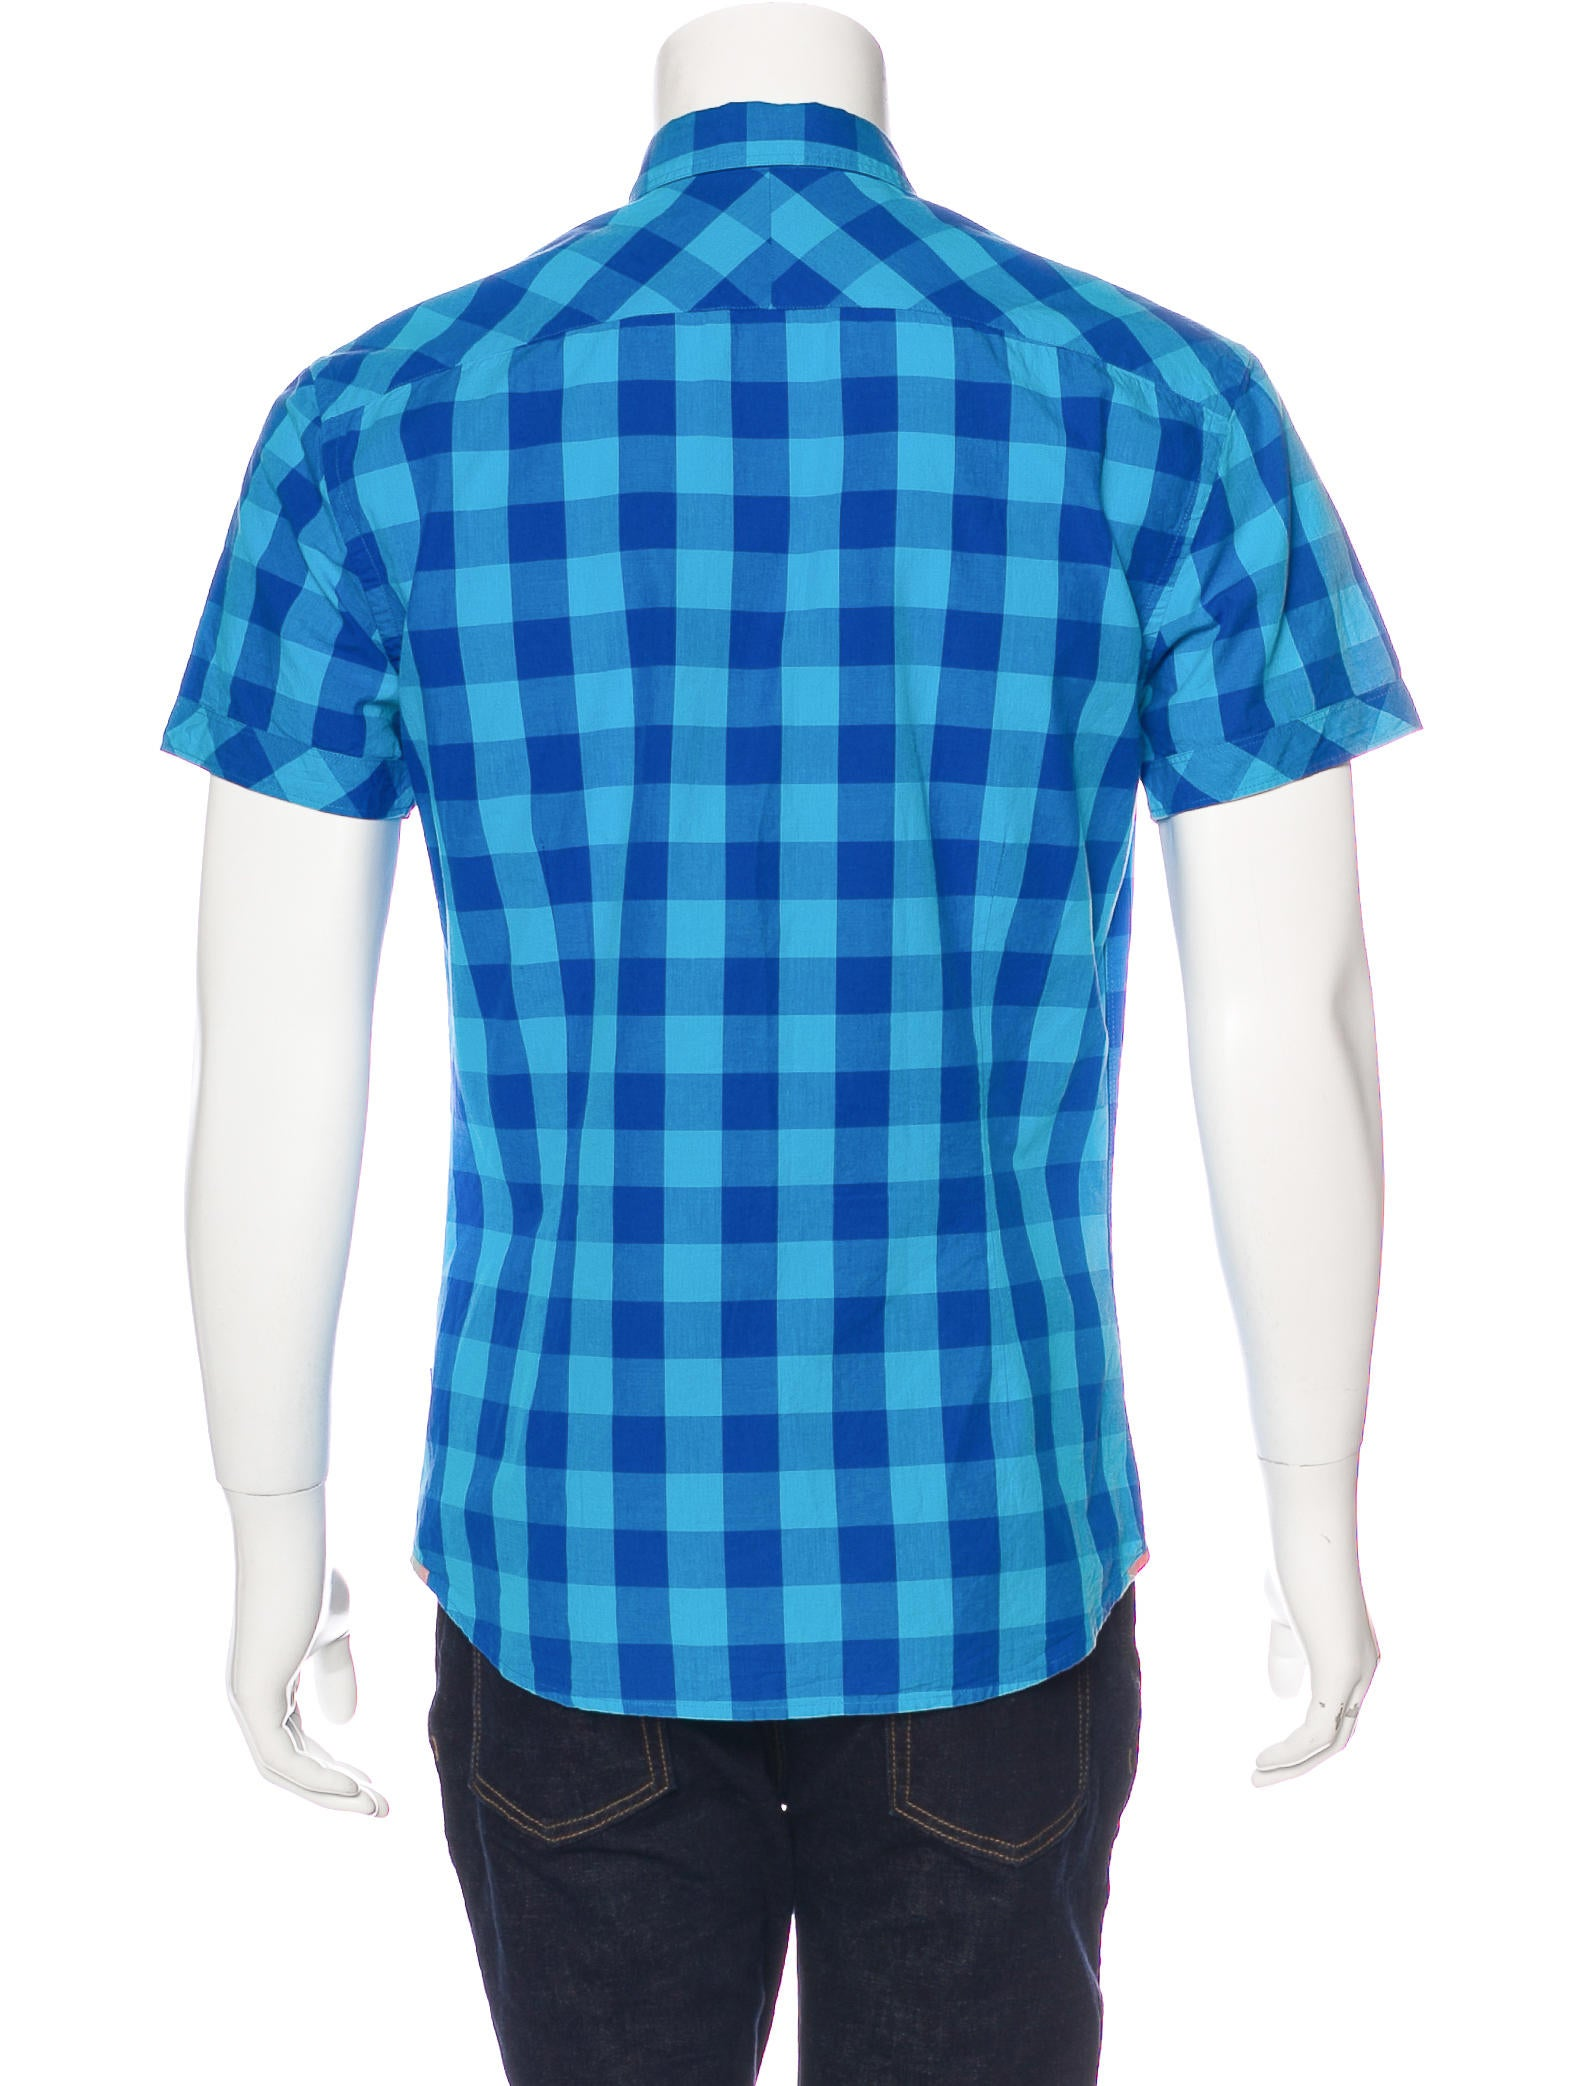 Paul smith jeans buffalo plaid short sleeve shirt Short sleeve plaid shirts